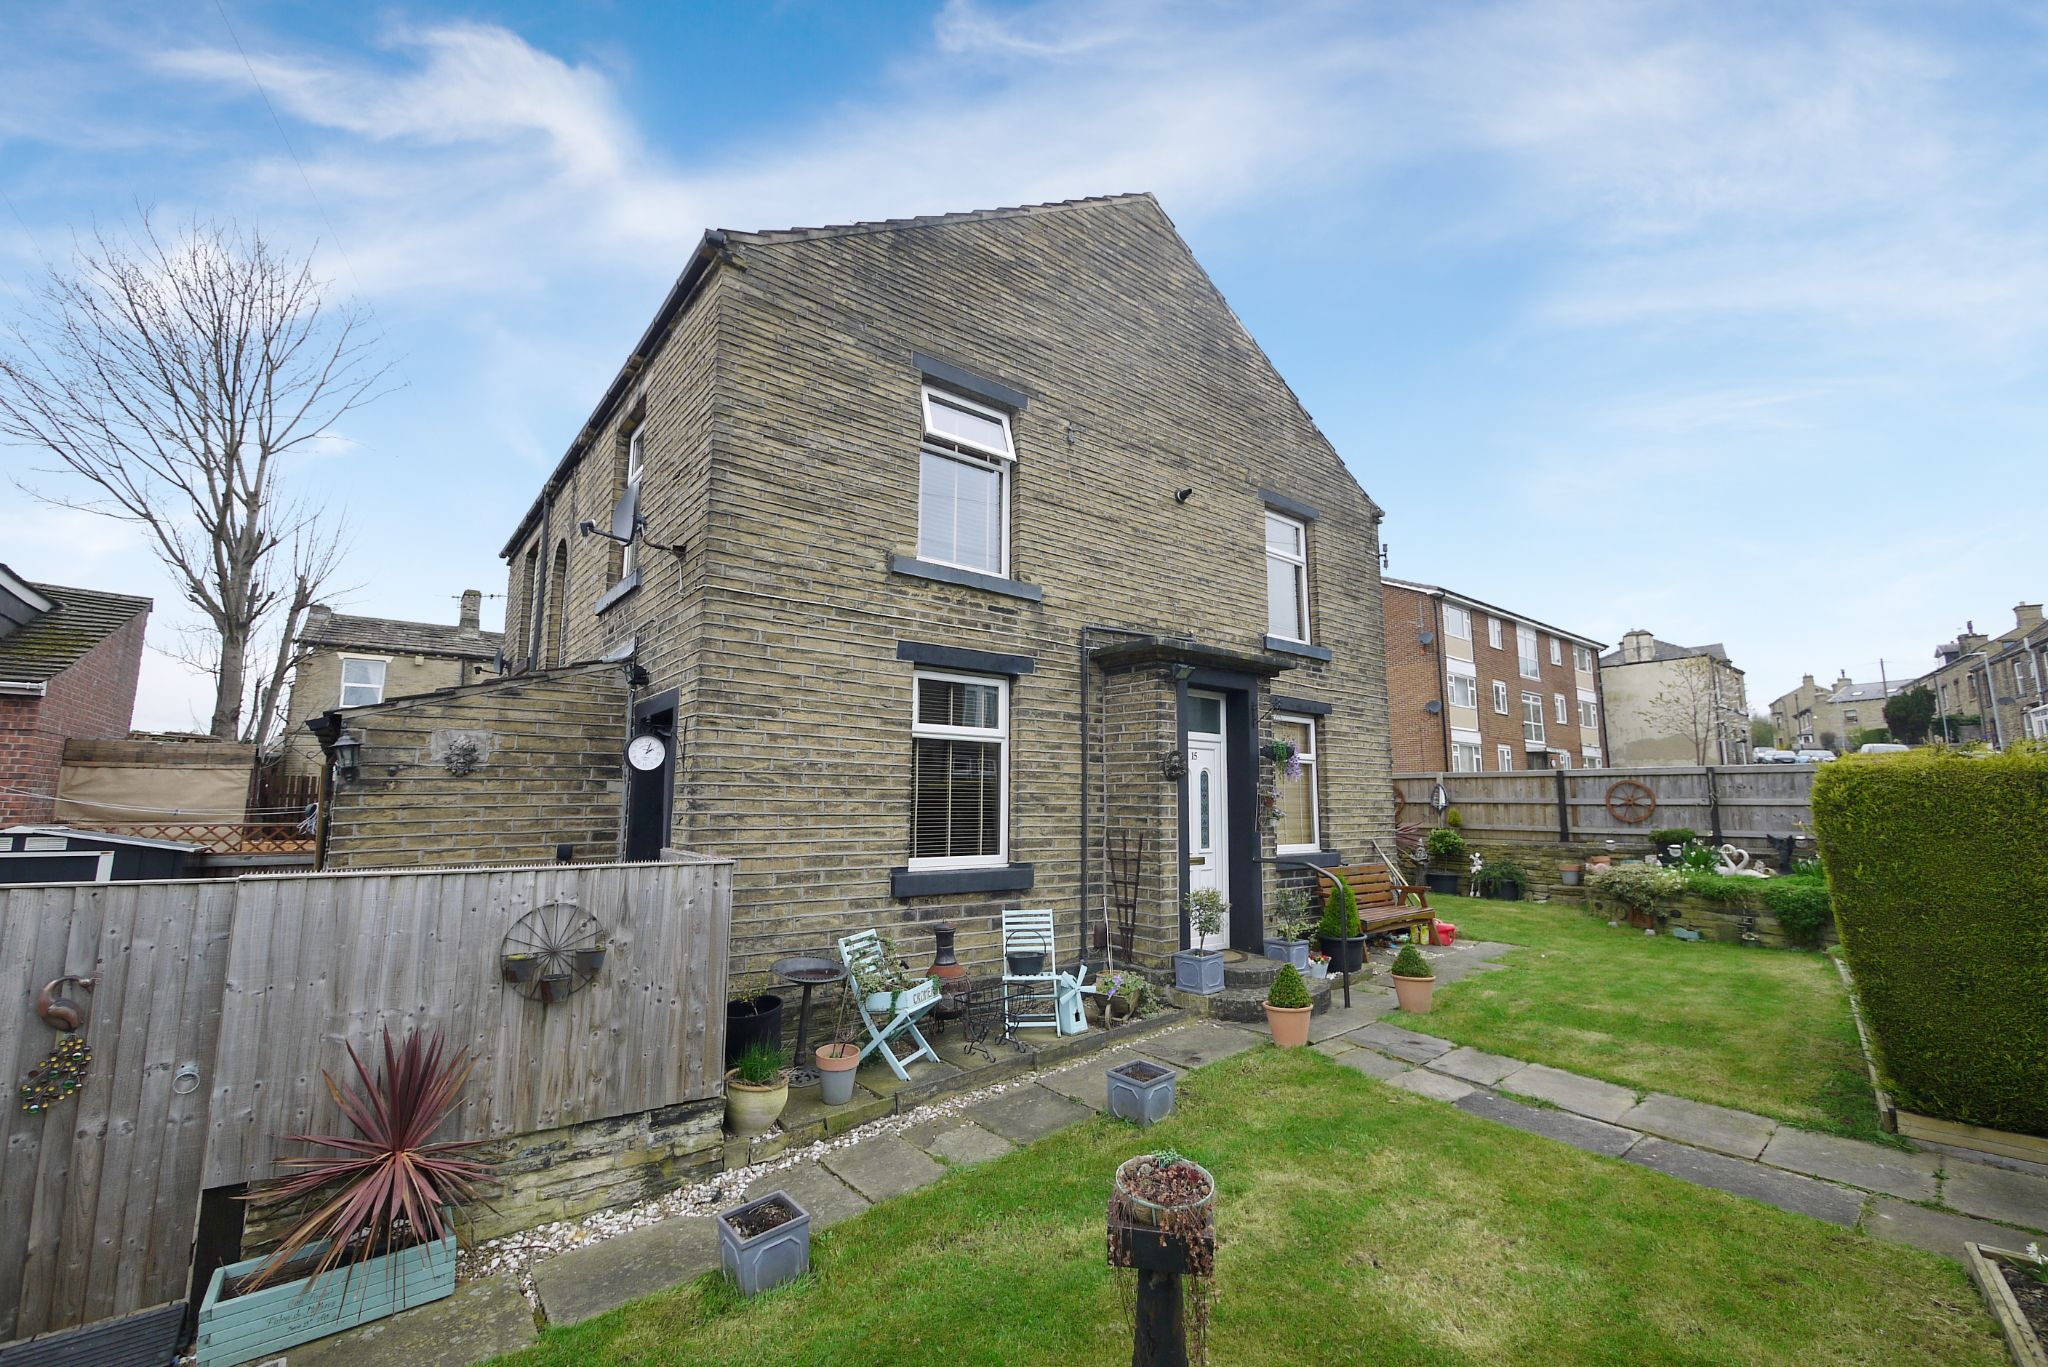 2 bedroom end terraced house SSTC in Brighouse - Photograph 1.